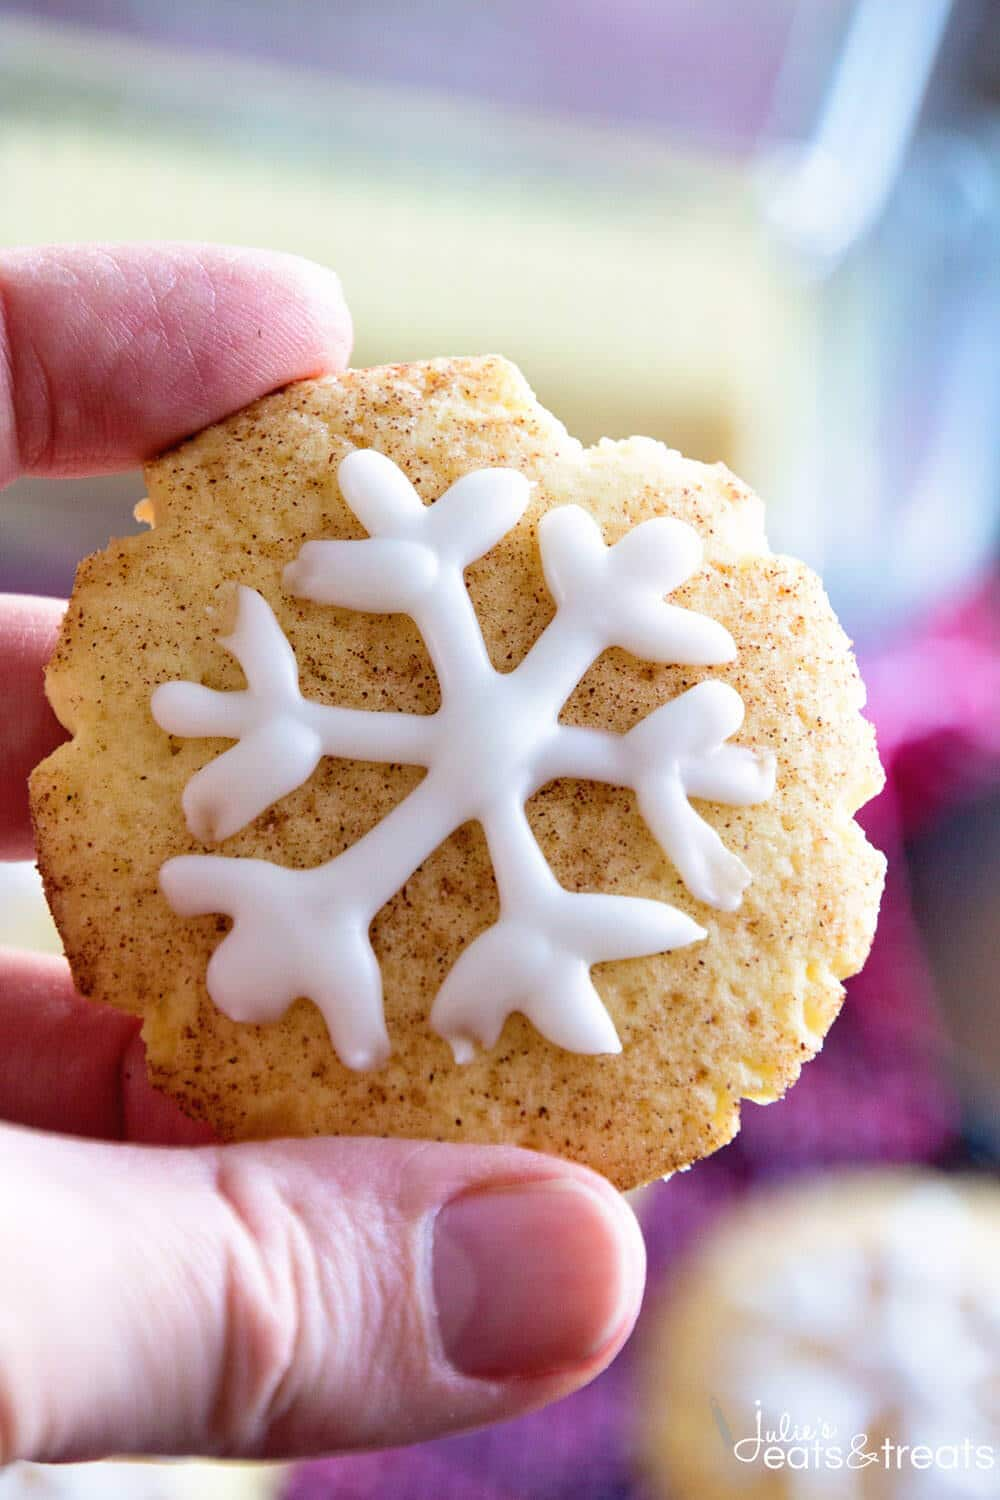 Snowflake Snickerdoodles ~ Festive Snickerdoodle Cookies for the Holiday Season with Snowflakes Piped on them in Icing! Perfect for Your Holiday Cookie Tray!